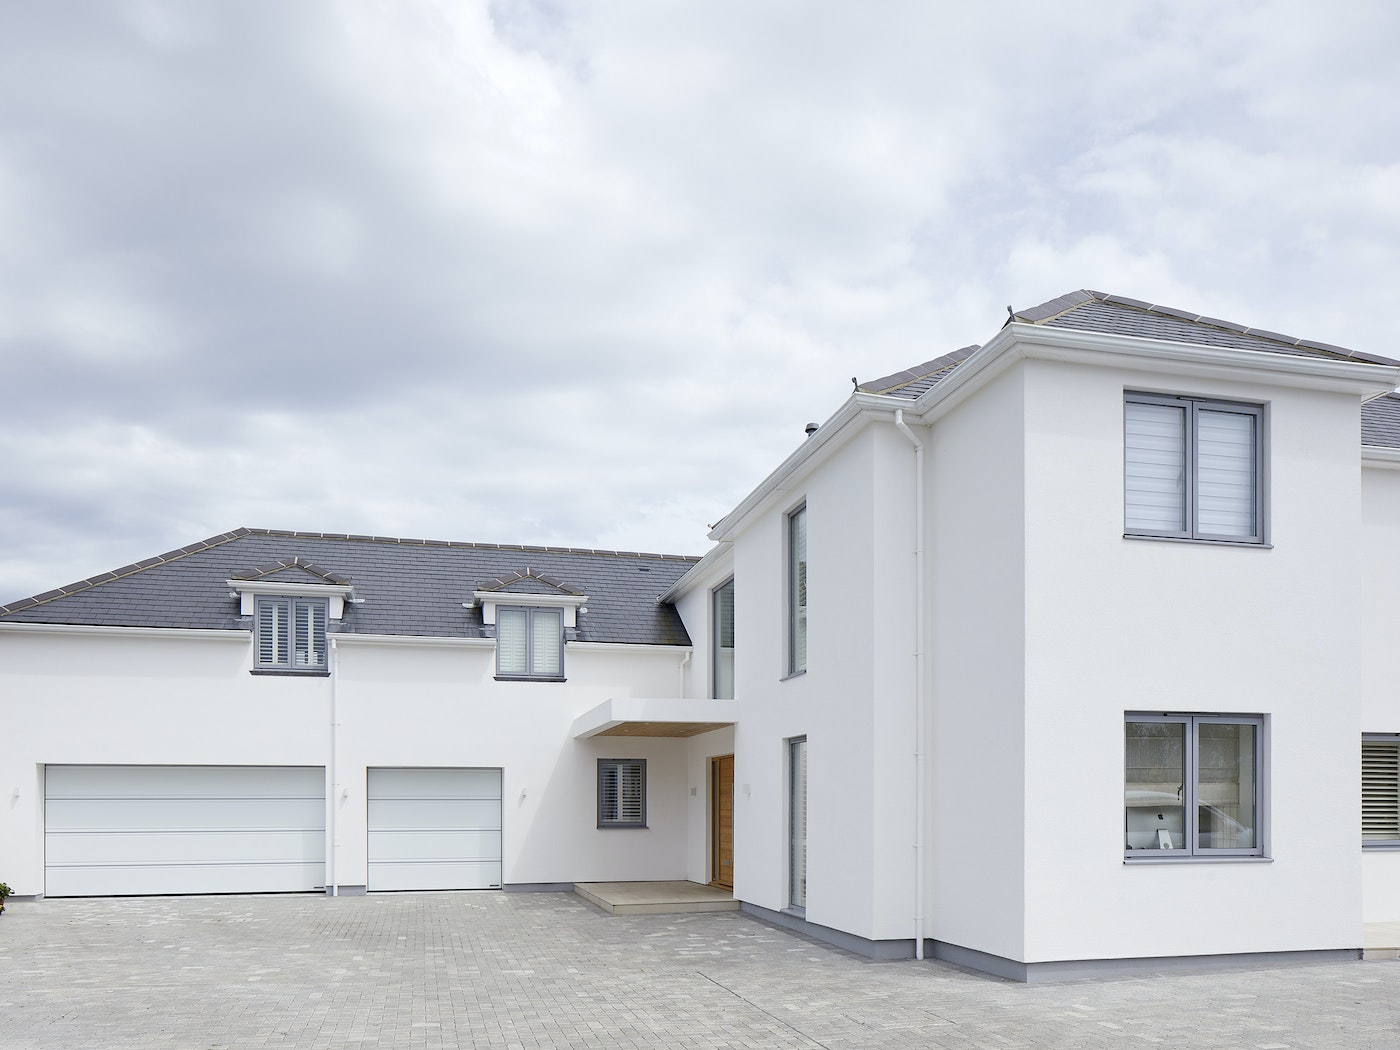 This contemporary house features a minimalist colour scheme, so the owners have chosen to highlight their front door by choosing a natural hardwood finish